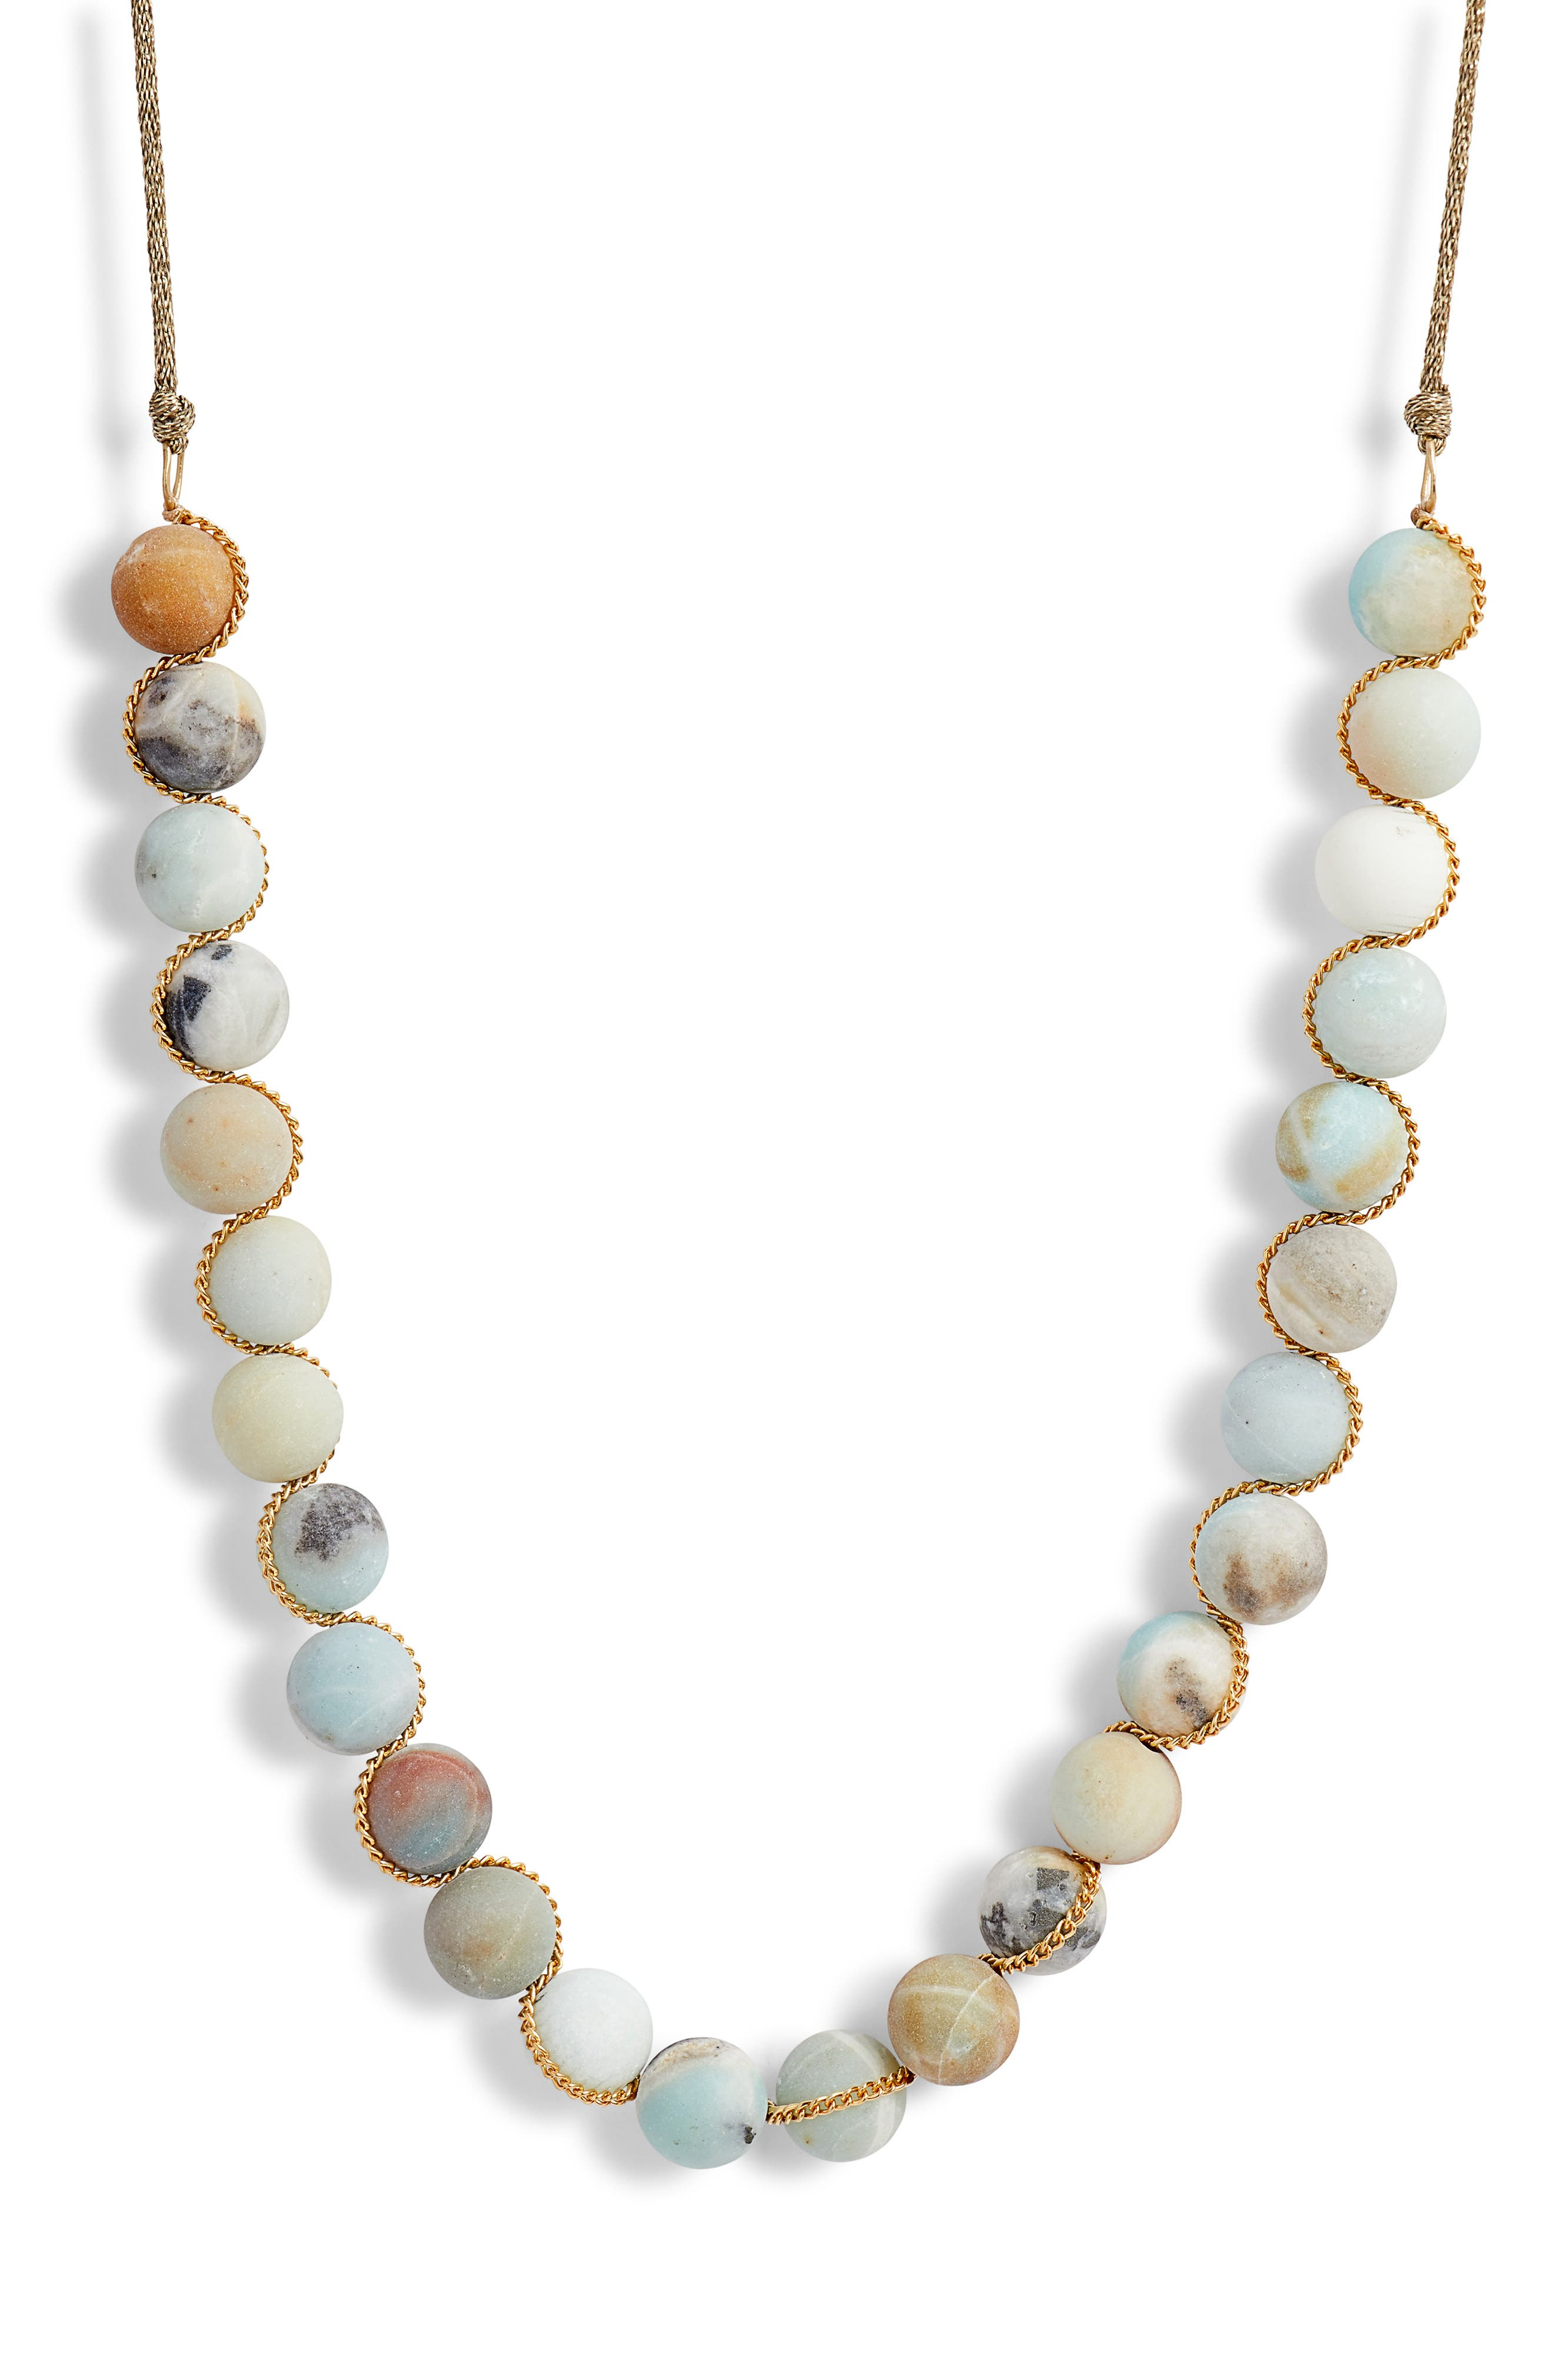 Matte Multicolor Amazonite Adjustable Necklace,                         Main,                         color, MATTE MULTI